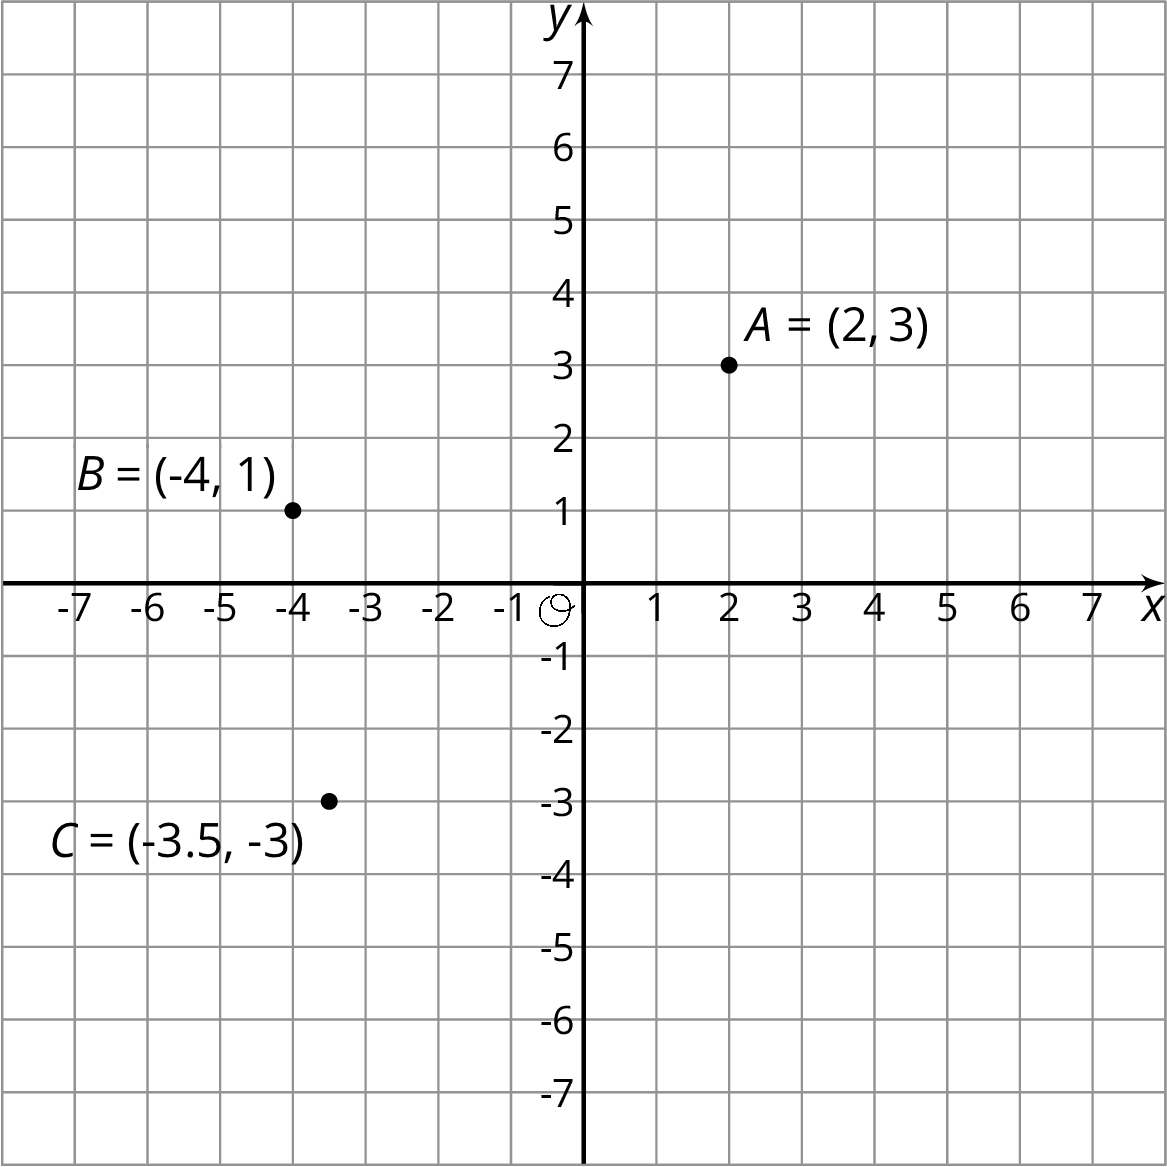 Worksheet Coordinate Plane Quadrant 1 Grass Fedjp